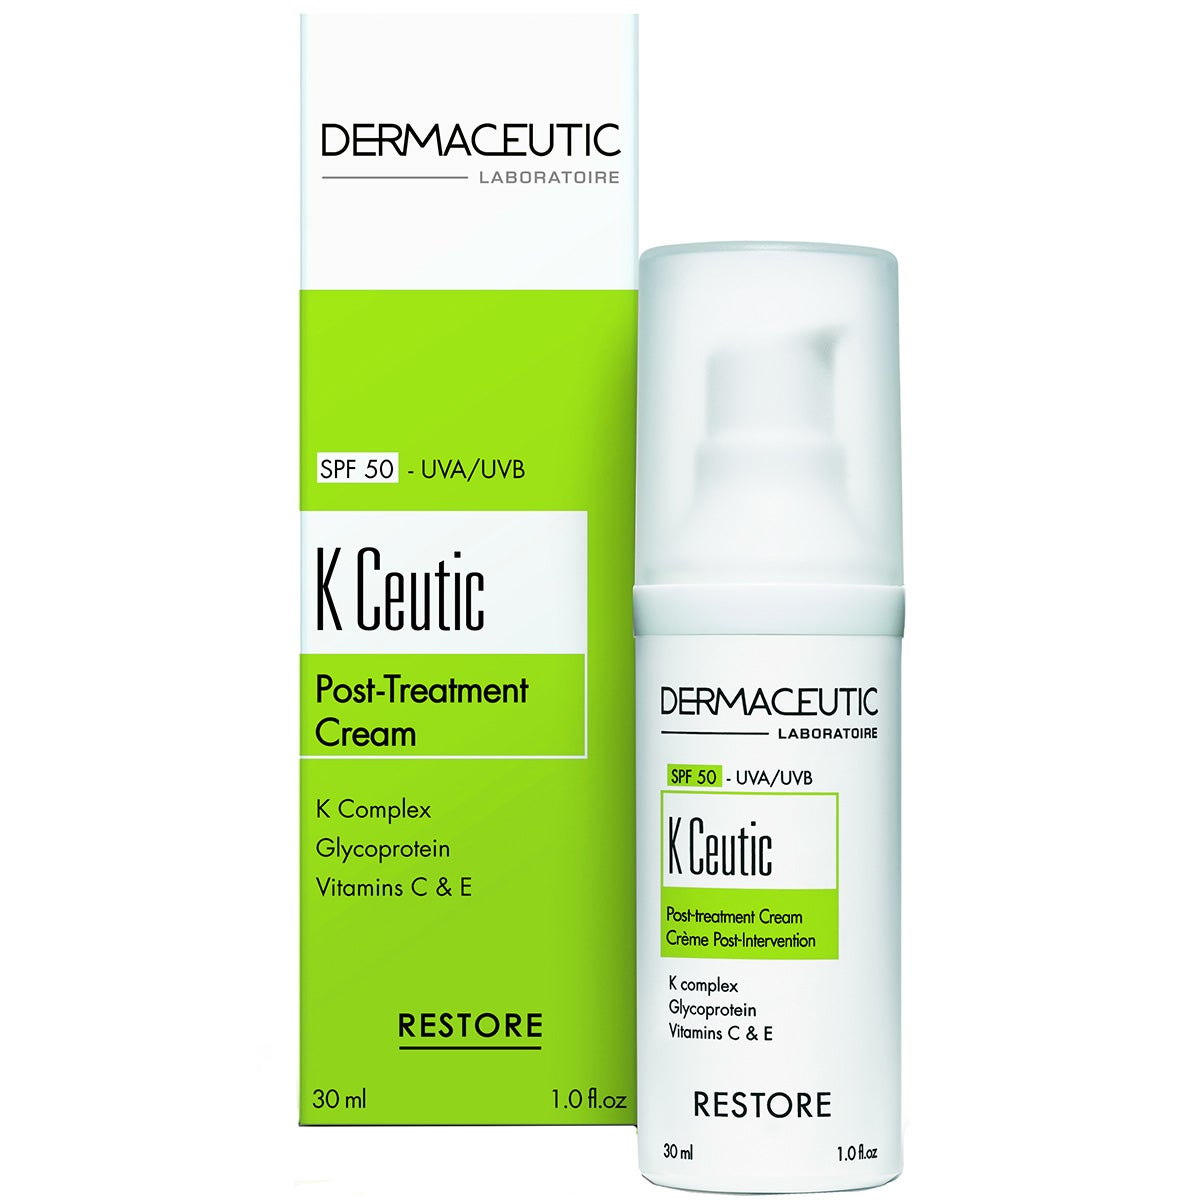 Dermaceutic K Ceutic Post-Treatment Restore